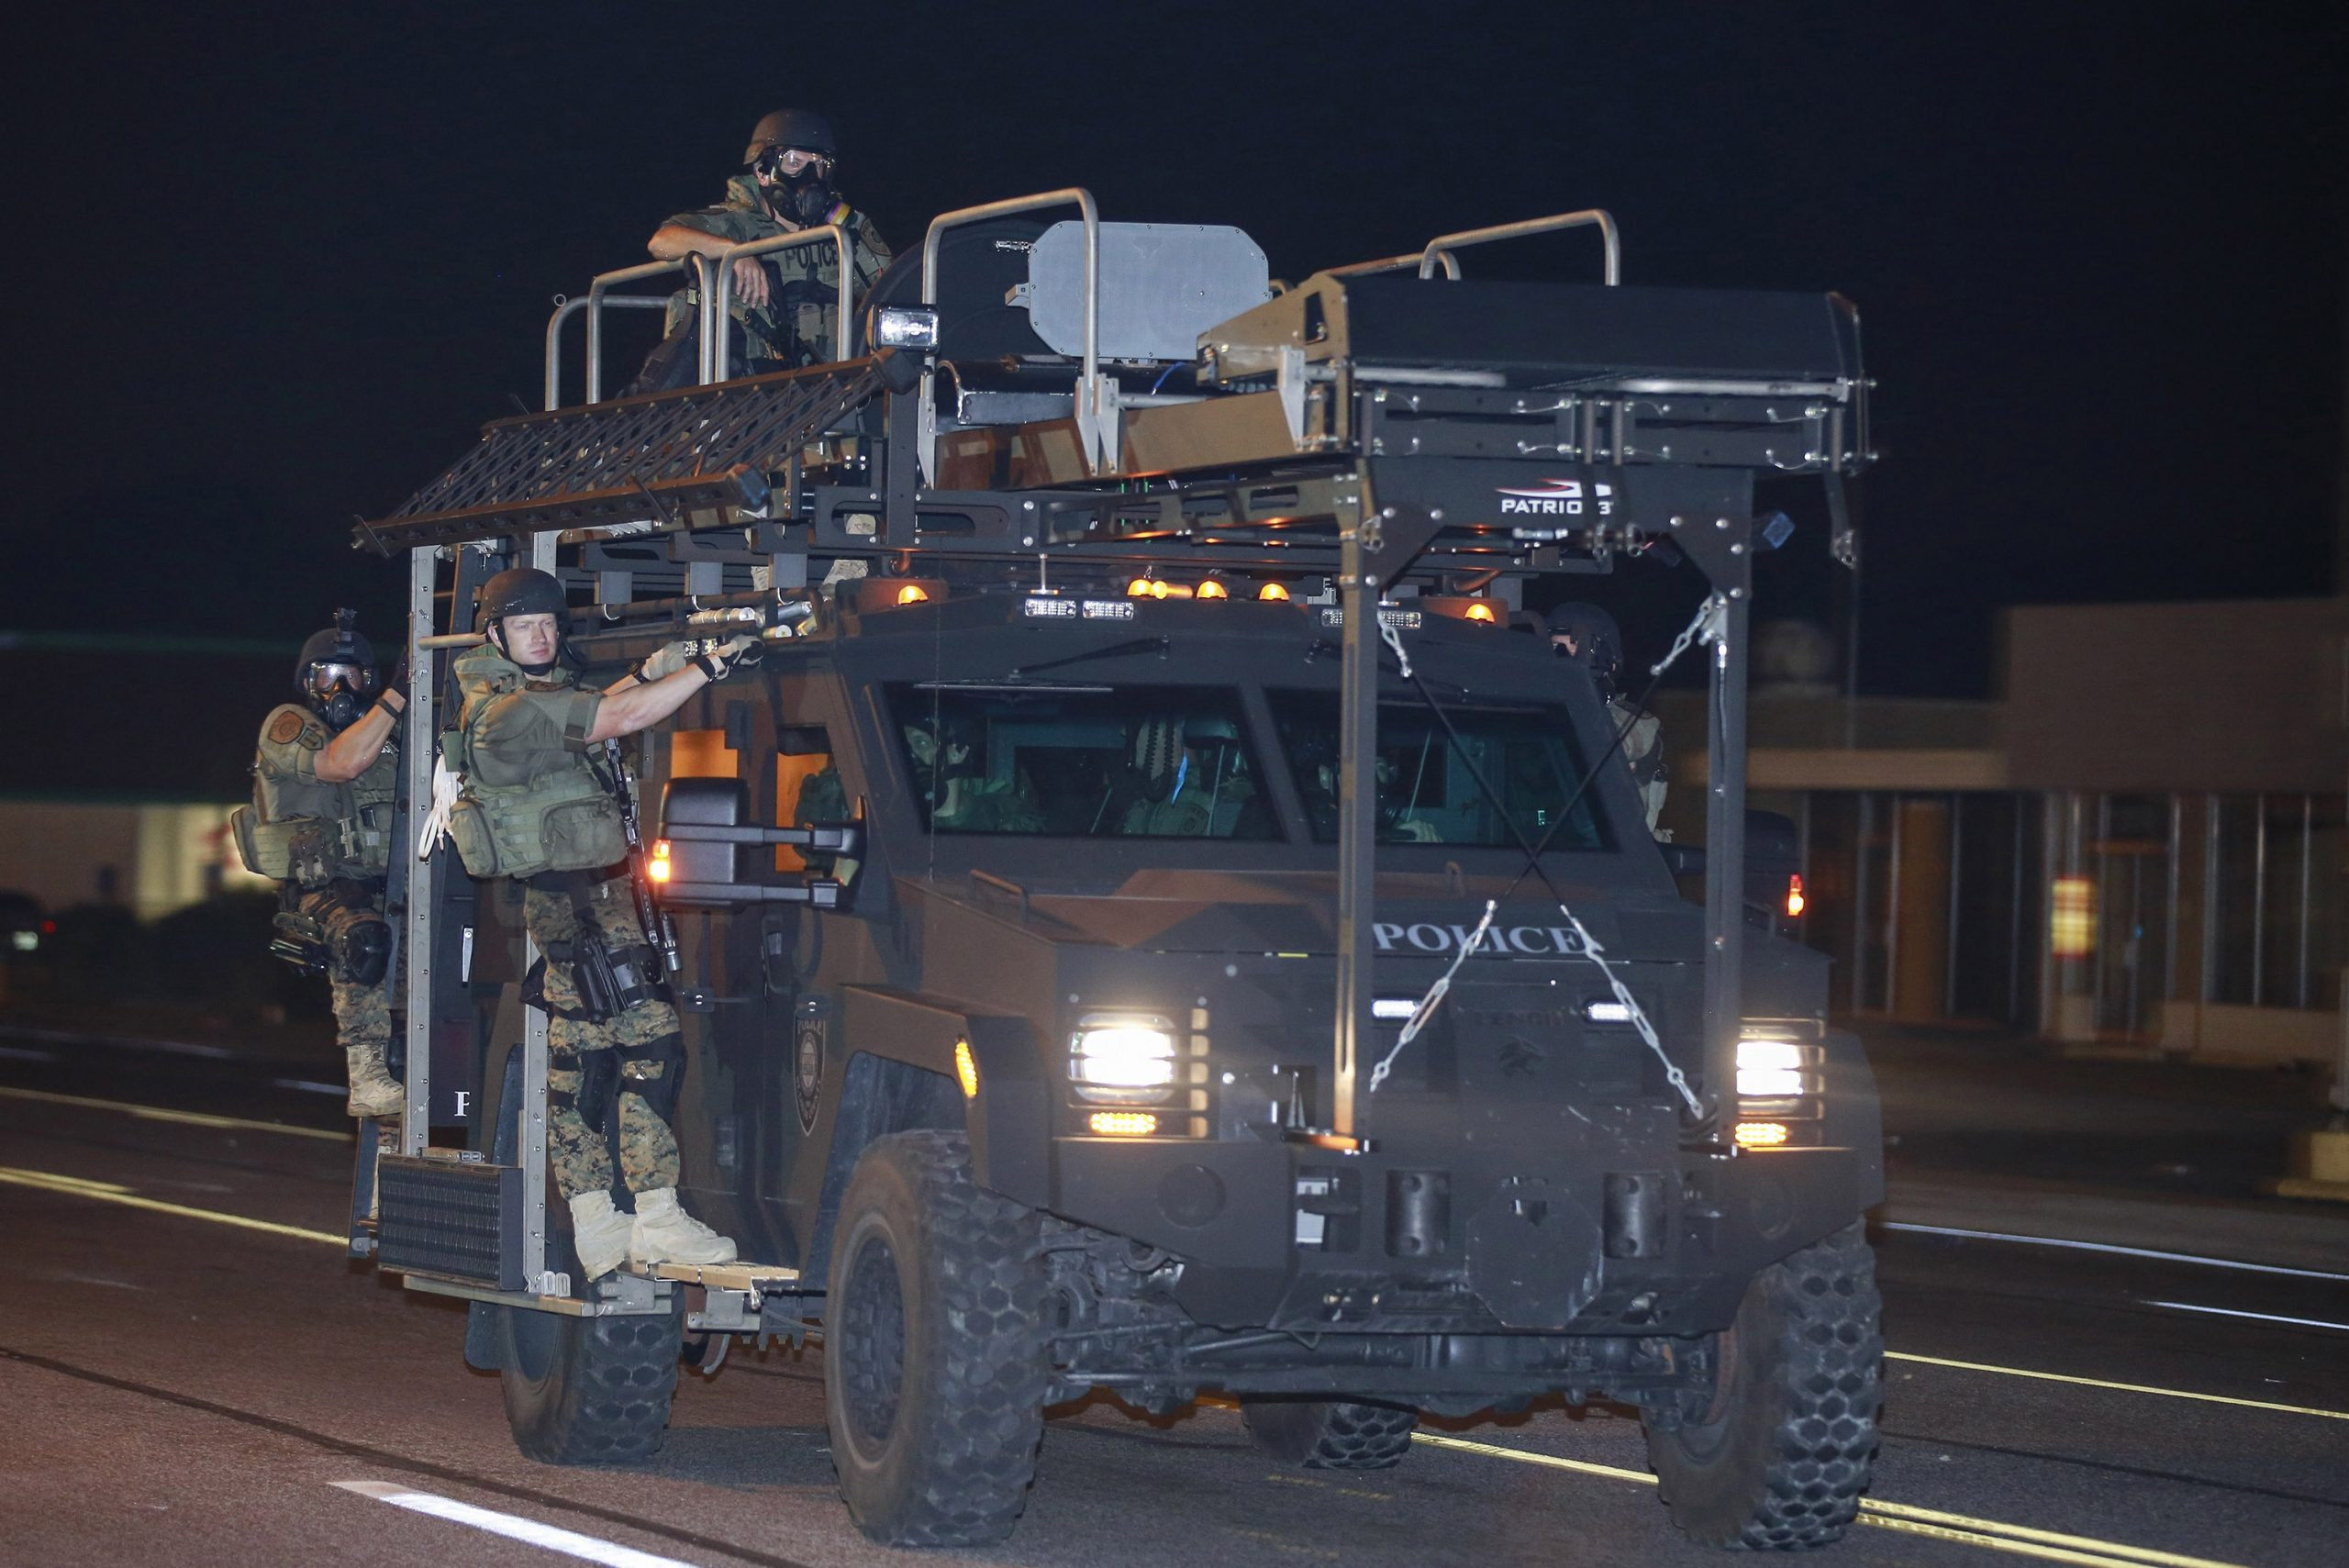 18 August 2014: Officers on a militarised police vehicle in Ferguson, Missouri, as protests continued over the death of 18-year-old Michael Brown. (Photograph by Bilgin Sasmaz/ Anadolu Agency/ Getty Images)